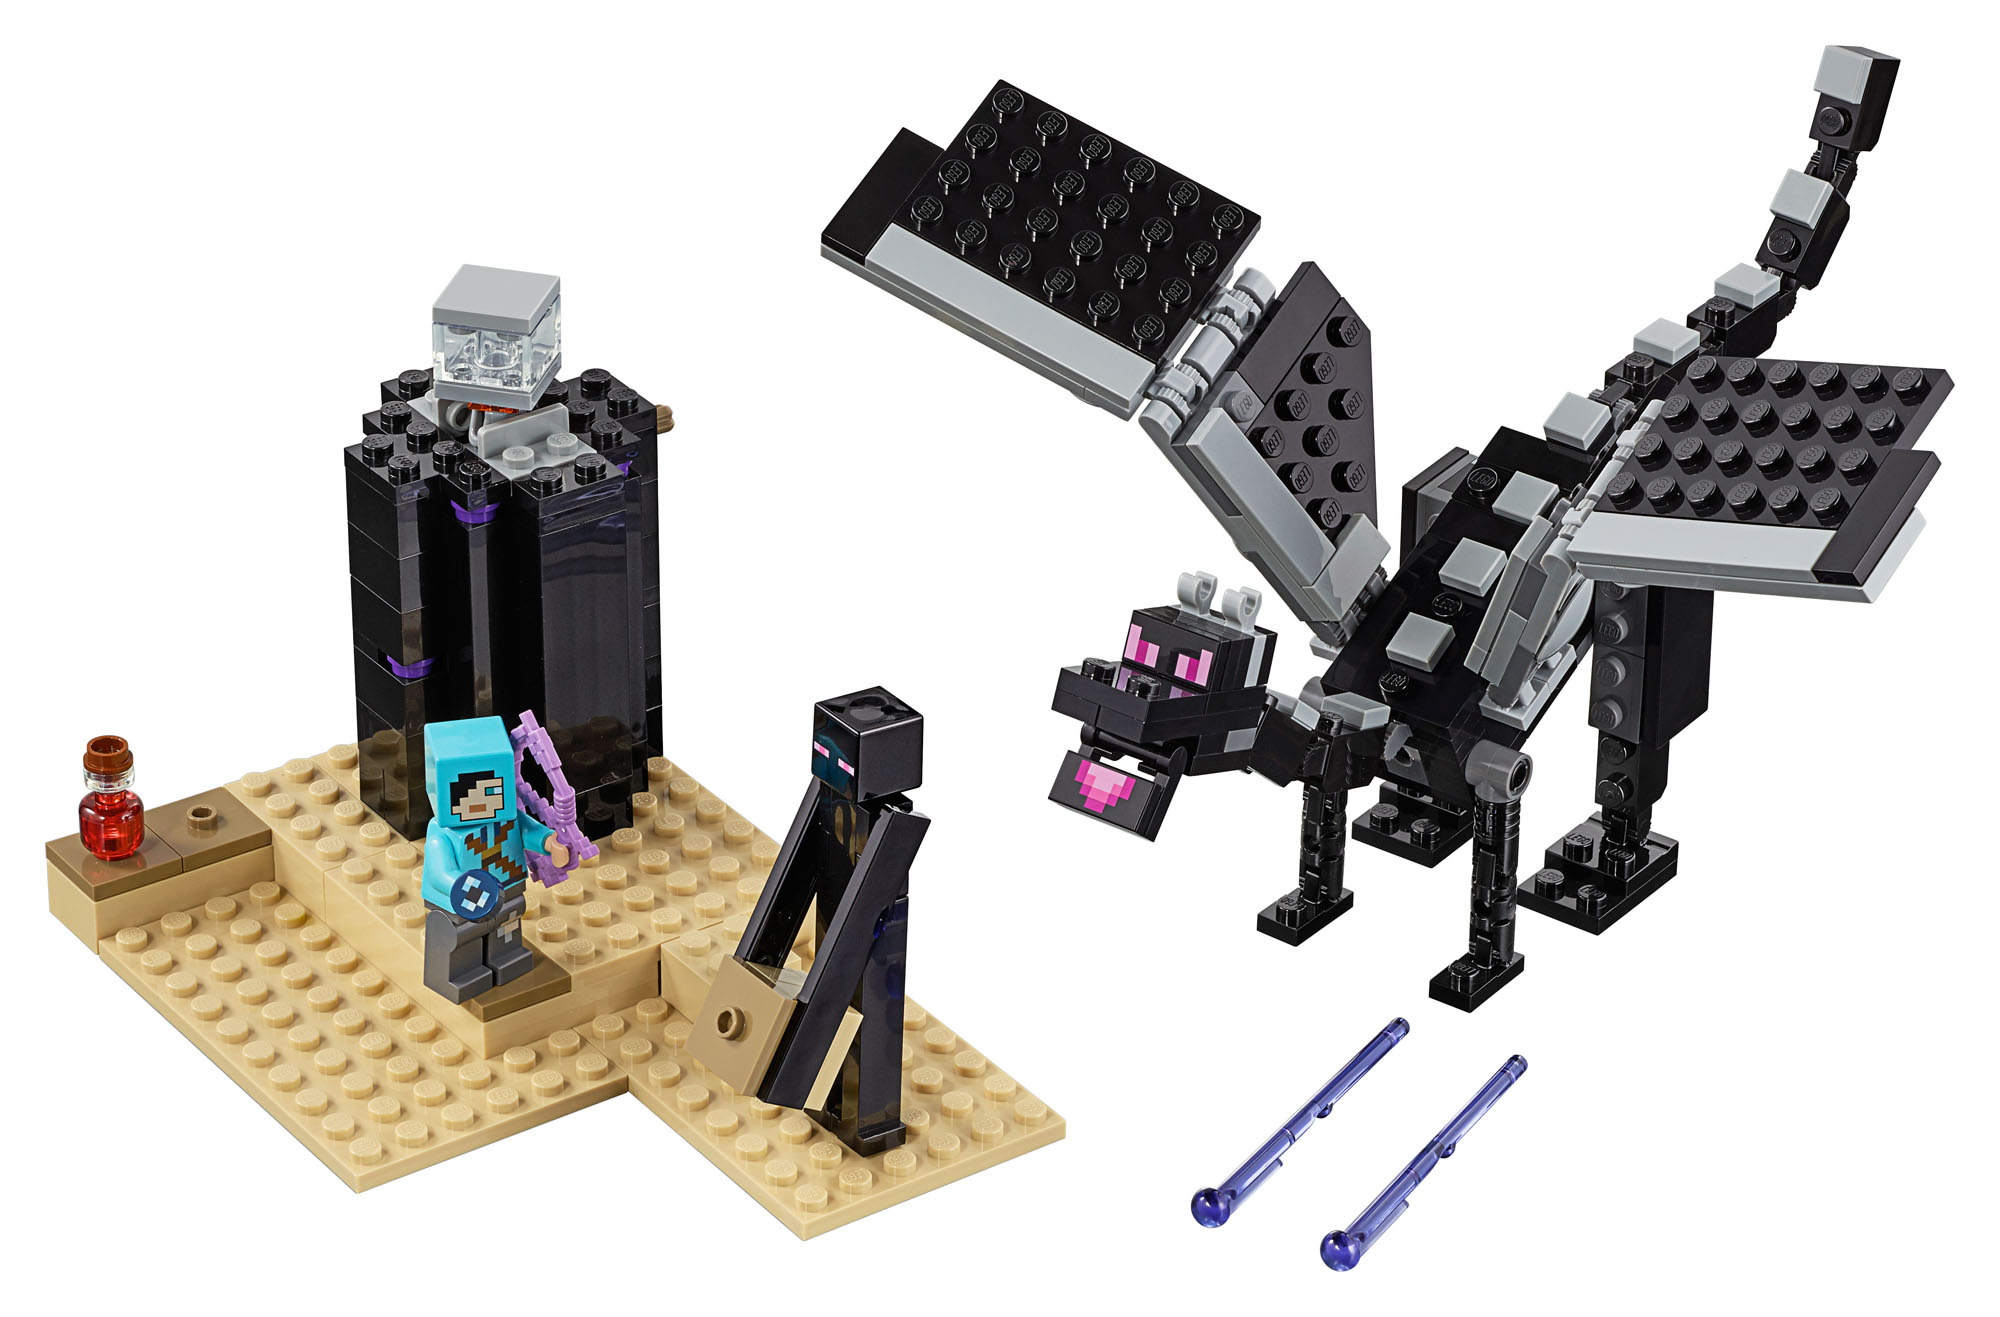 LEGO 21151 Minecraft The End Battle Slayer Minifigure and Buildable Dragon Action Figures Building Set, Toys for Kids 7 Years Old and Older